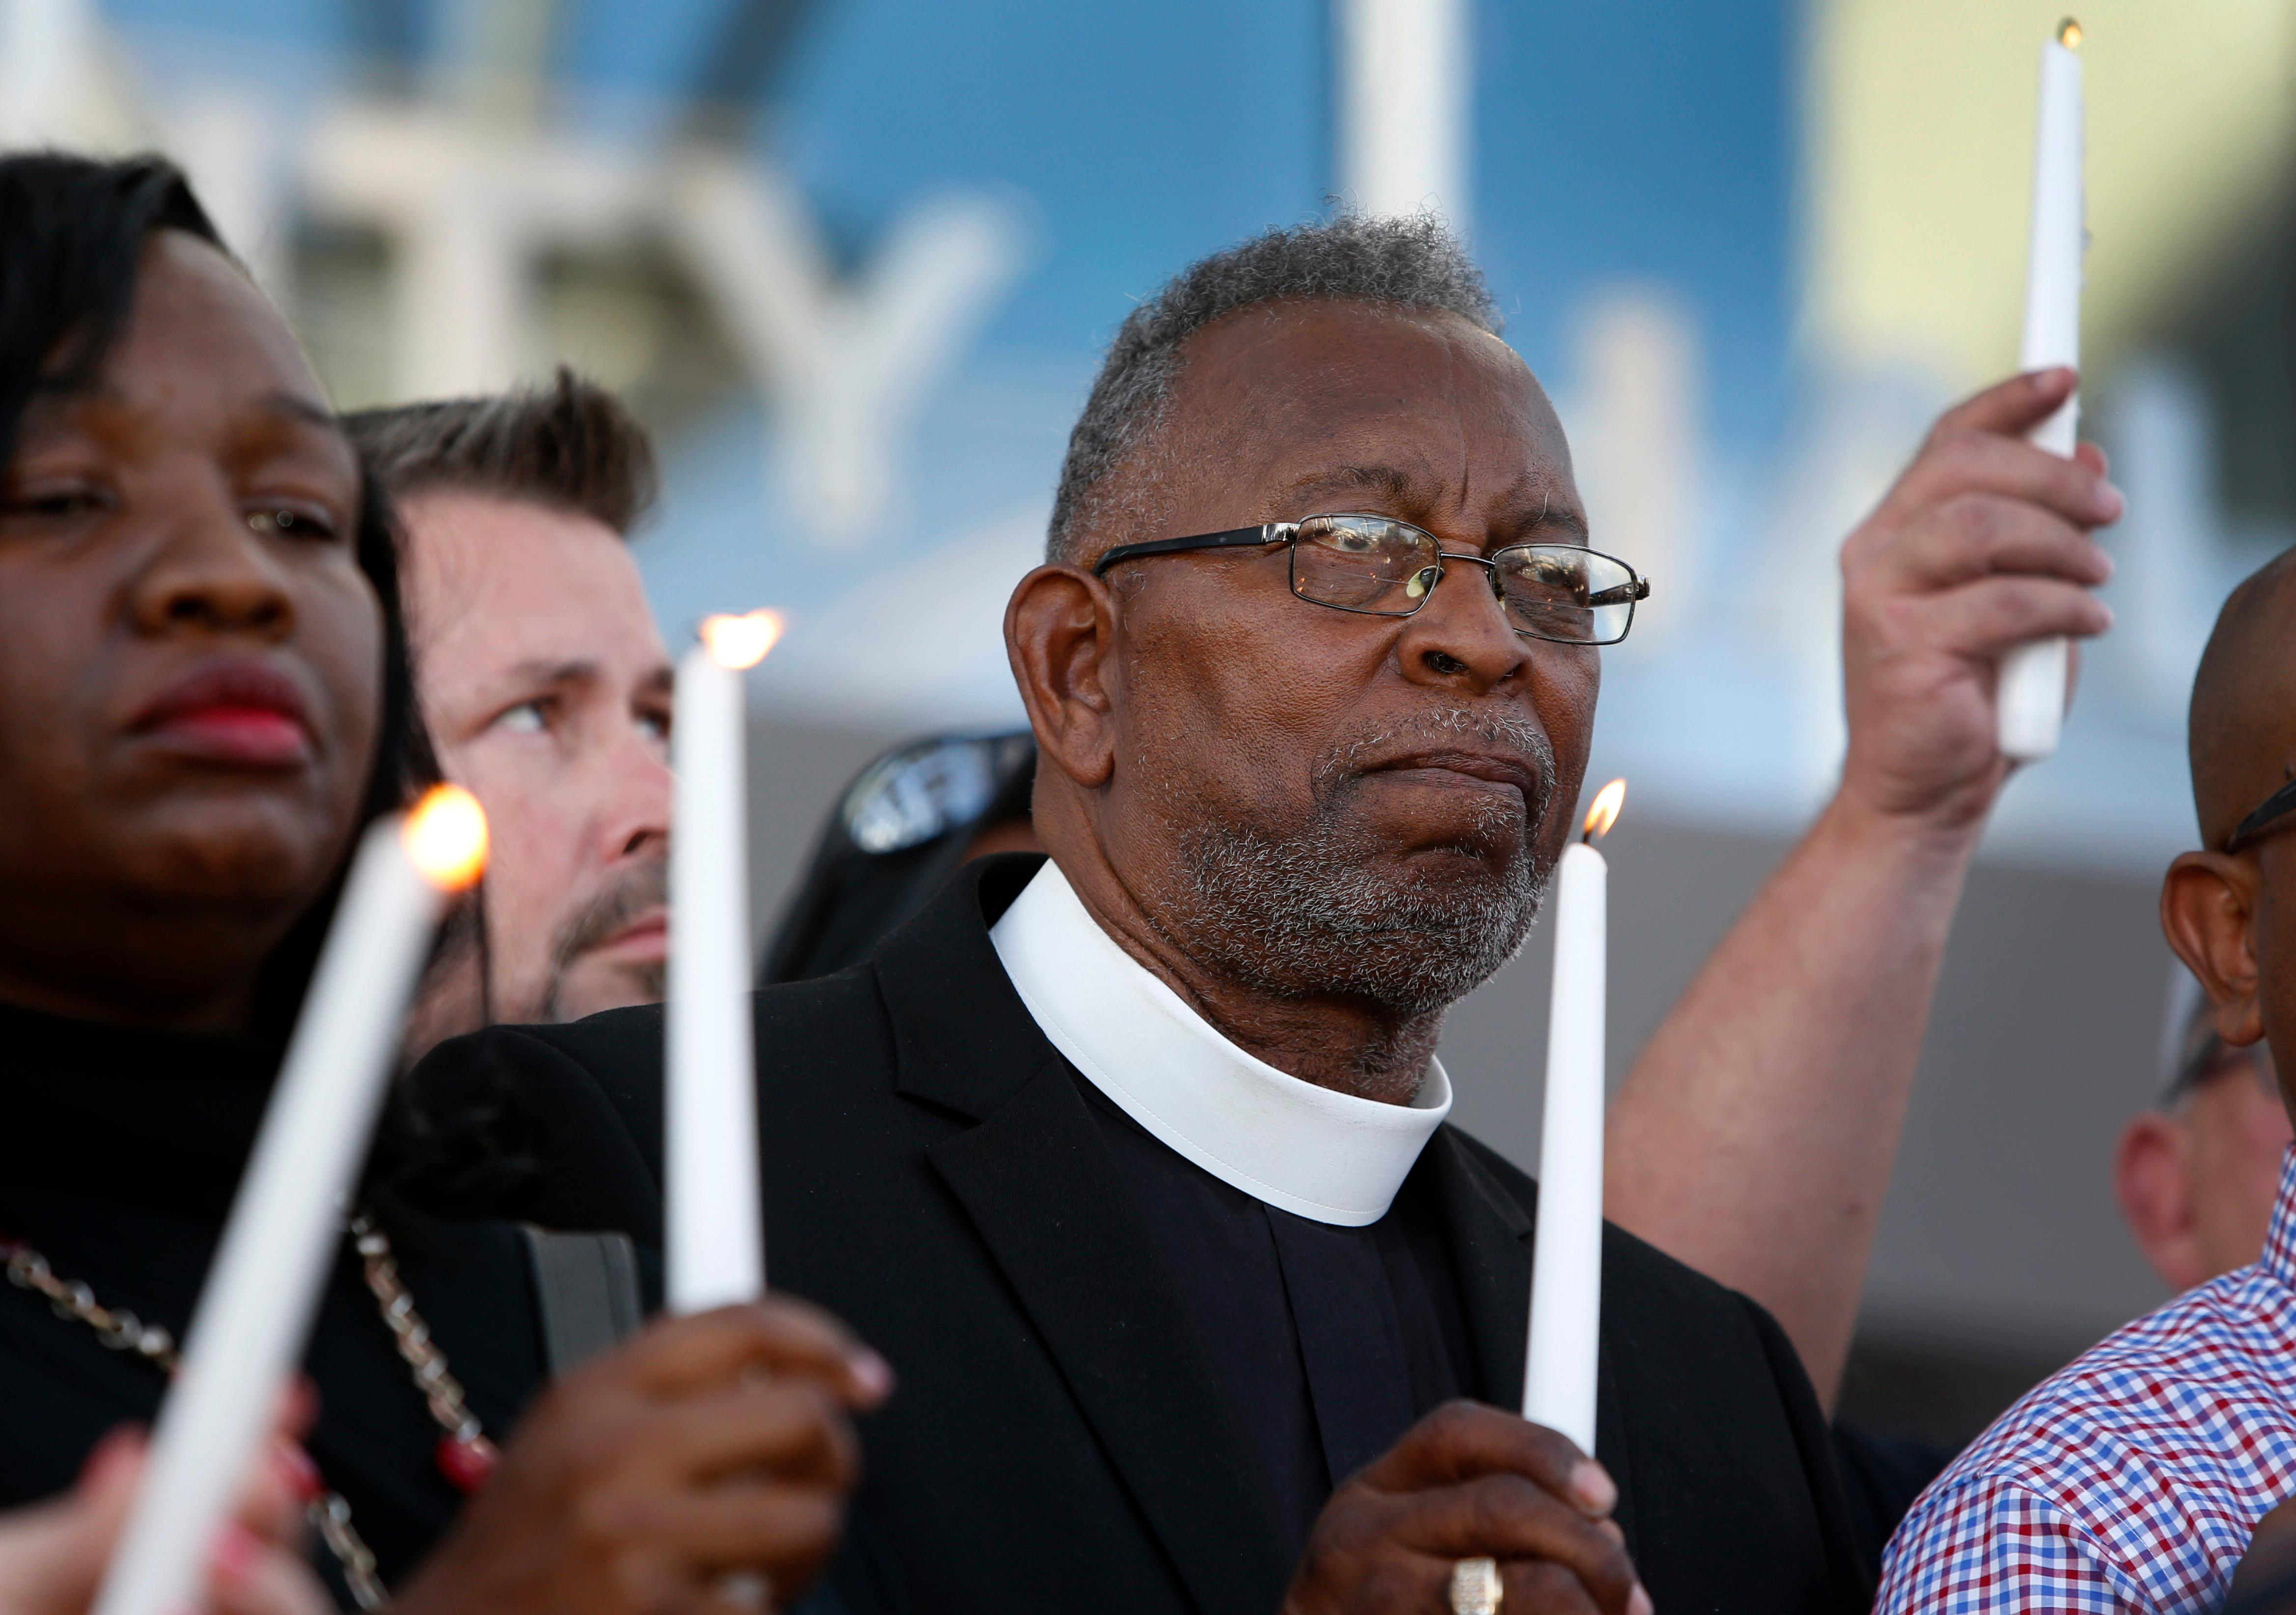 Pastor William McCurdy holds a candle during a prayer vigil in honor of those affected by the shooting on the Las Vegas Strip, in front of Las Vegas City Hall in Las Vegas, Monday, Oct. 2, 2017. The vigil was held in honor of the over 50 people killed and hundreds injured in a mass shooting at an outdoor music concert late Sunday. (Steve Marcus/Las Vegas Sun via AP)